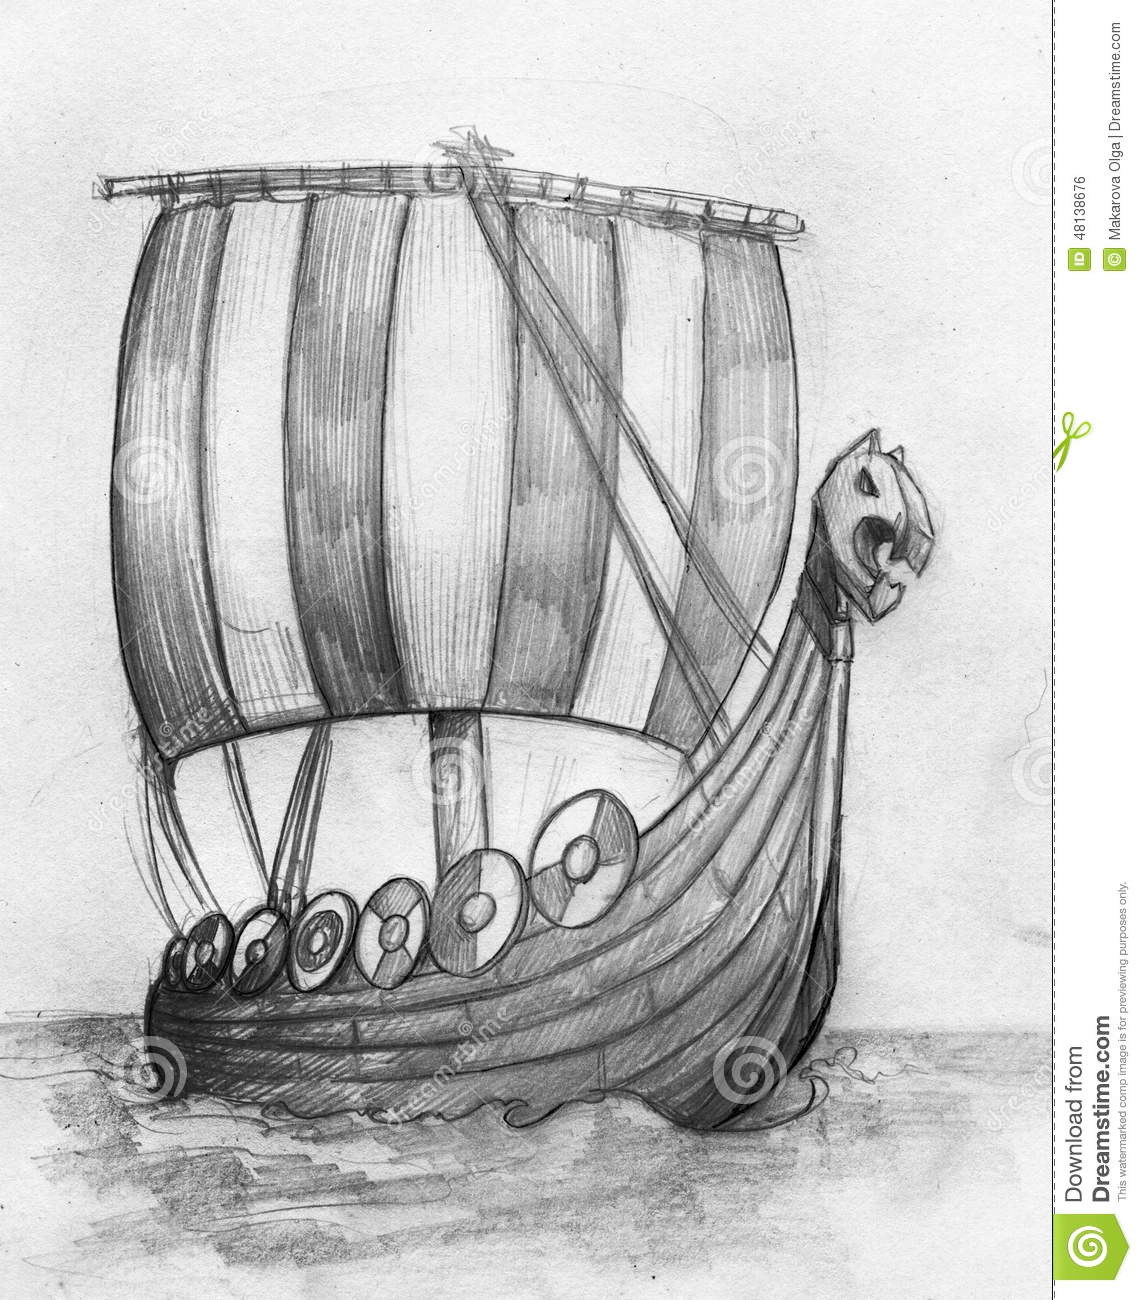 Viking ship drakkar sketch stock illustration illustration of boat